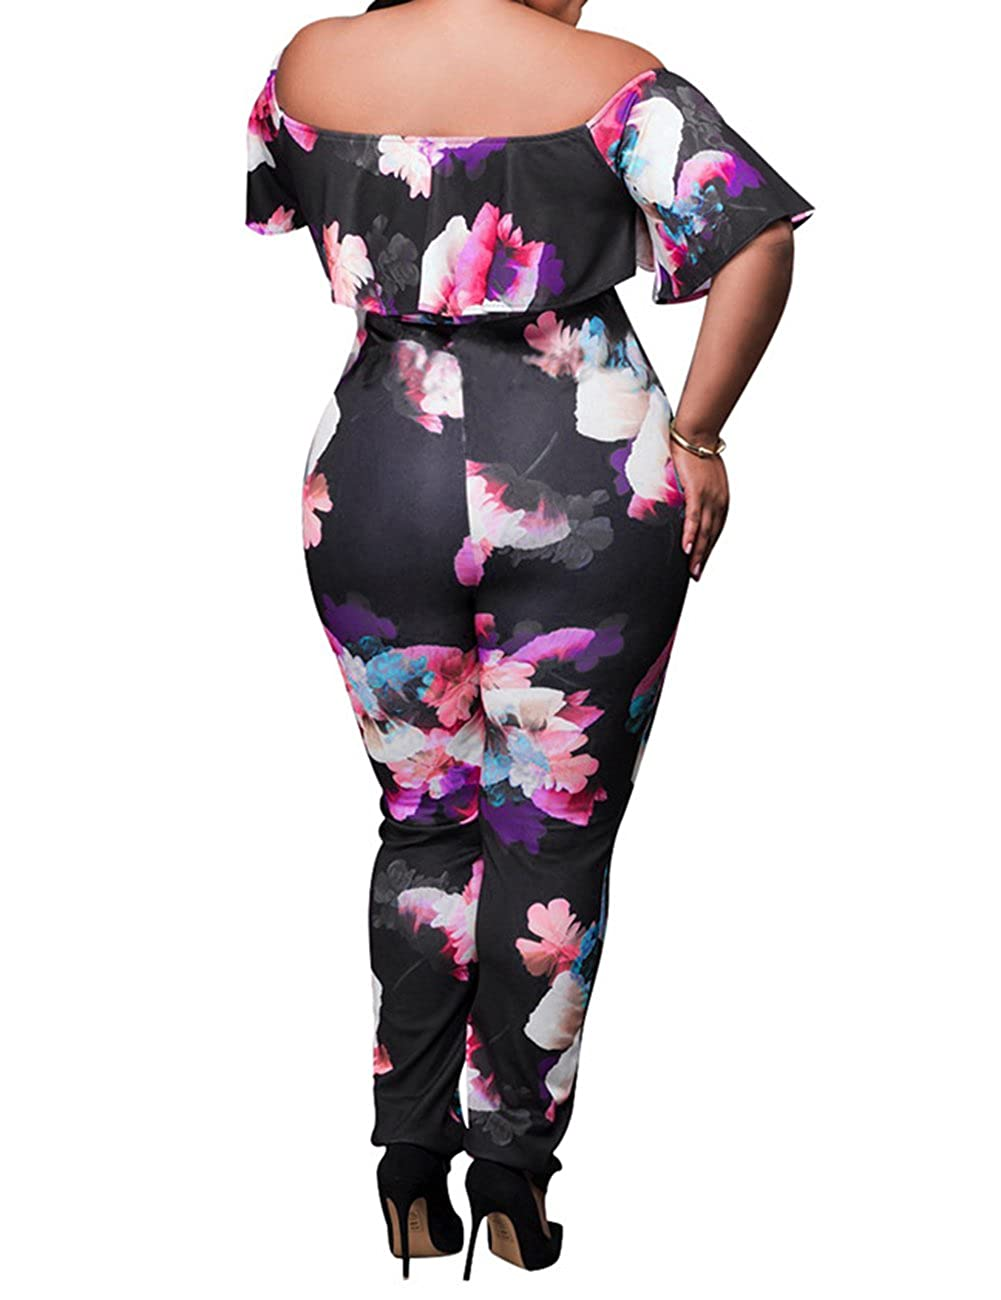 3e81ec89204 Amazon.com  AMZ PLUS Sexy High Waist Plus Size Off Shoulder Floral Romper  Jumpsuits for Women  Clothing